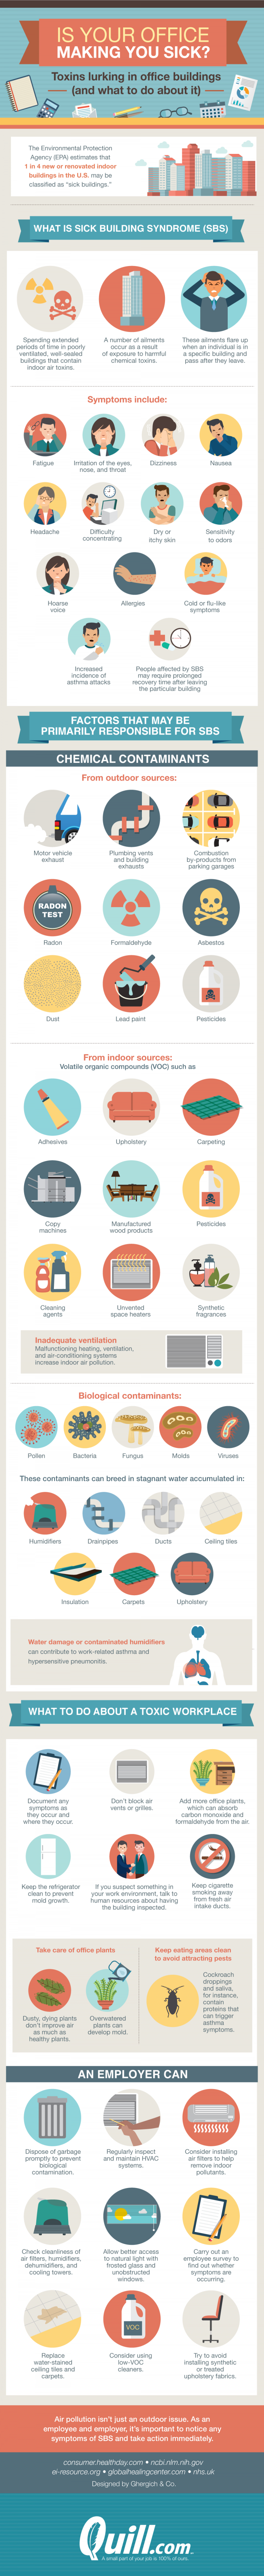 Dangerous Toxins Lurking In Your Office And Ways To Avoid Them Infographic